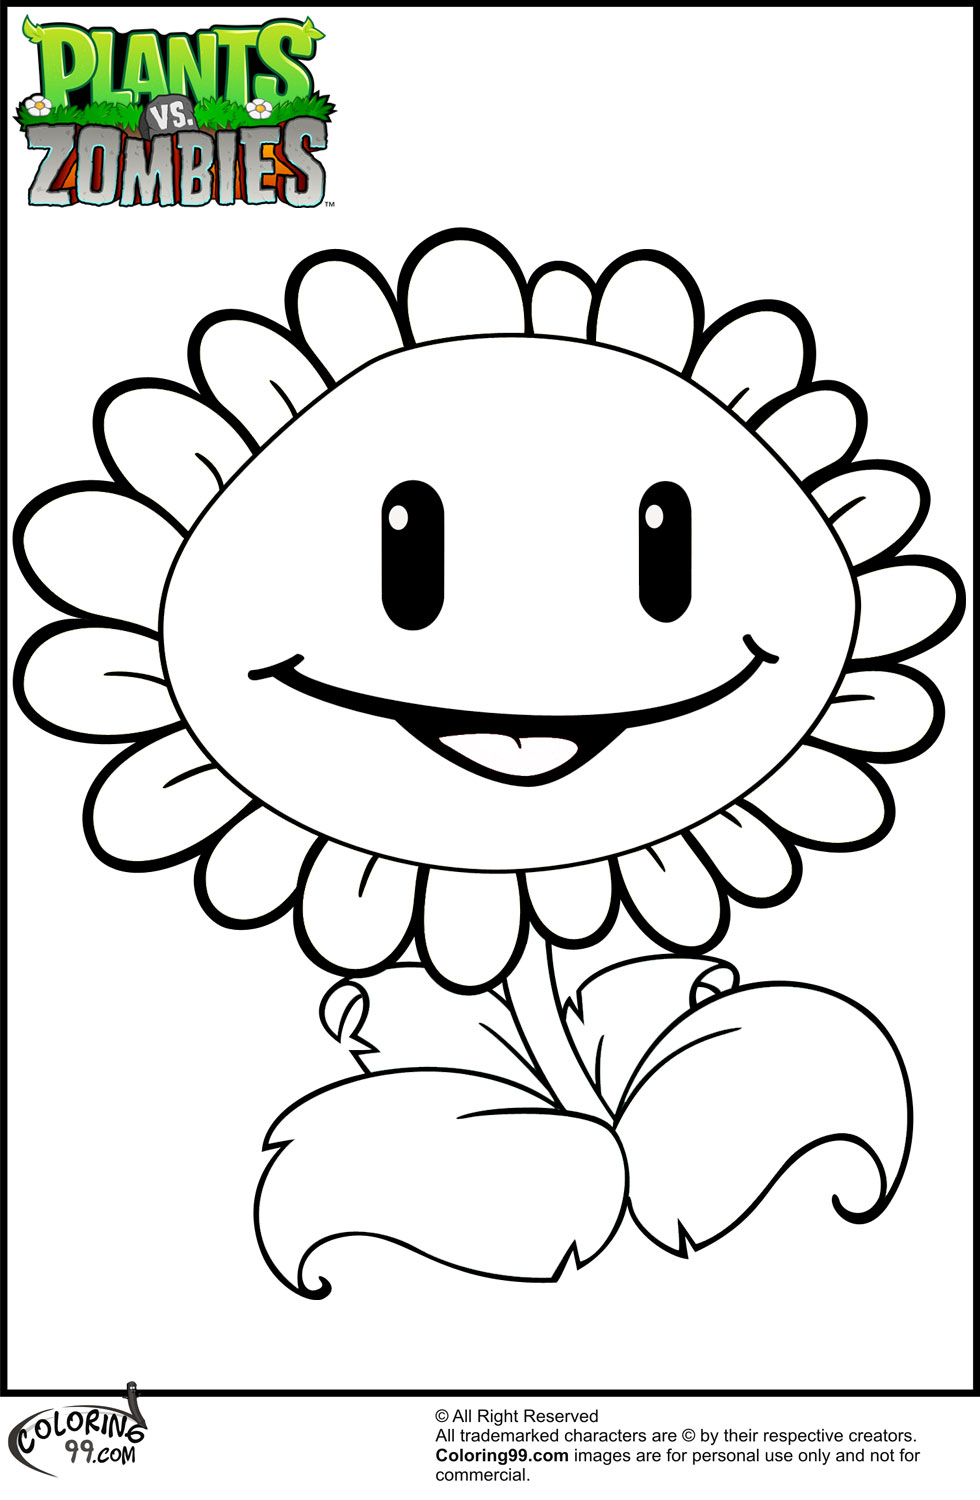 Plants Vs Zombies Coloring Pages Only Coloring Pages Vs Coloring Pages Free